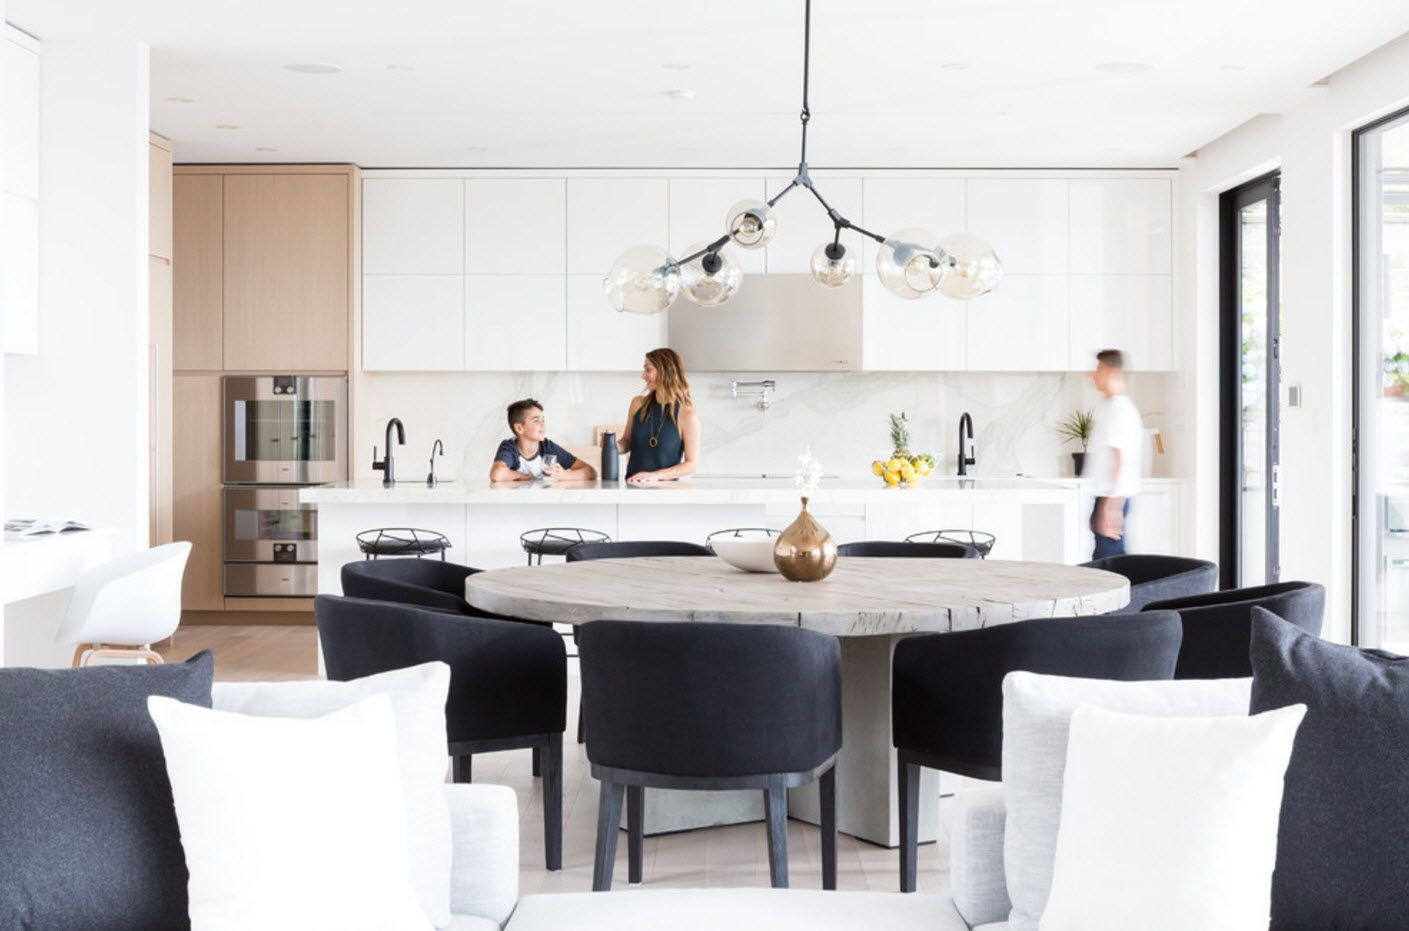 Dining zone with modular armchairs and gray round table at the first floor of the cottage